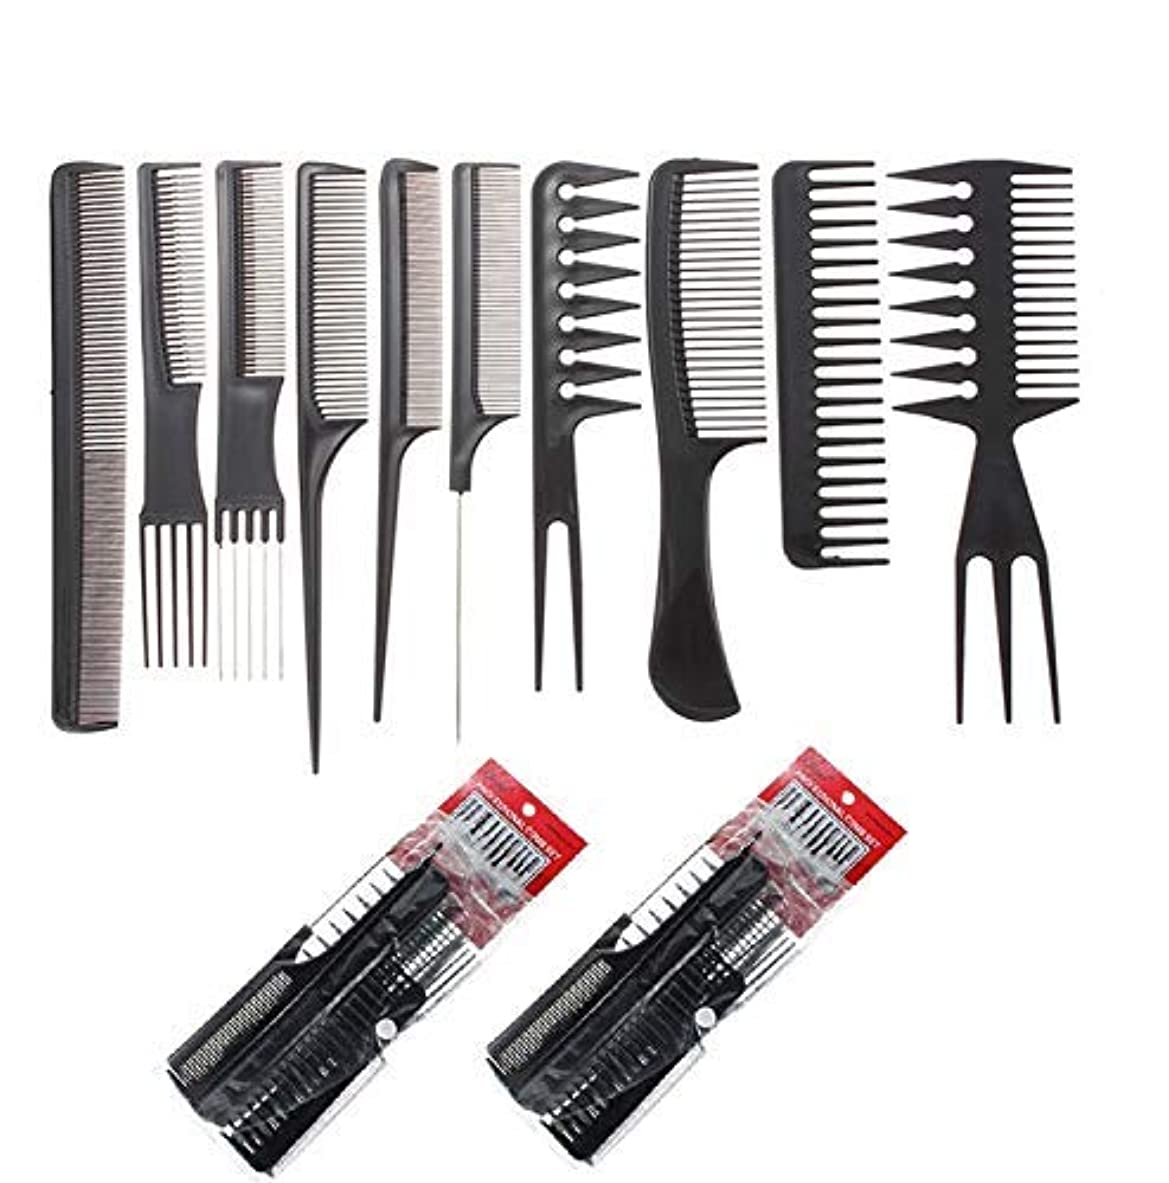 SBYURE 20pcs Professional Styling Comb Set,10pcs/Set,2 Set Salon Hairdressing Combs Hair Care Styling Tools Hair...